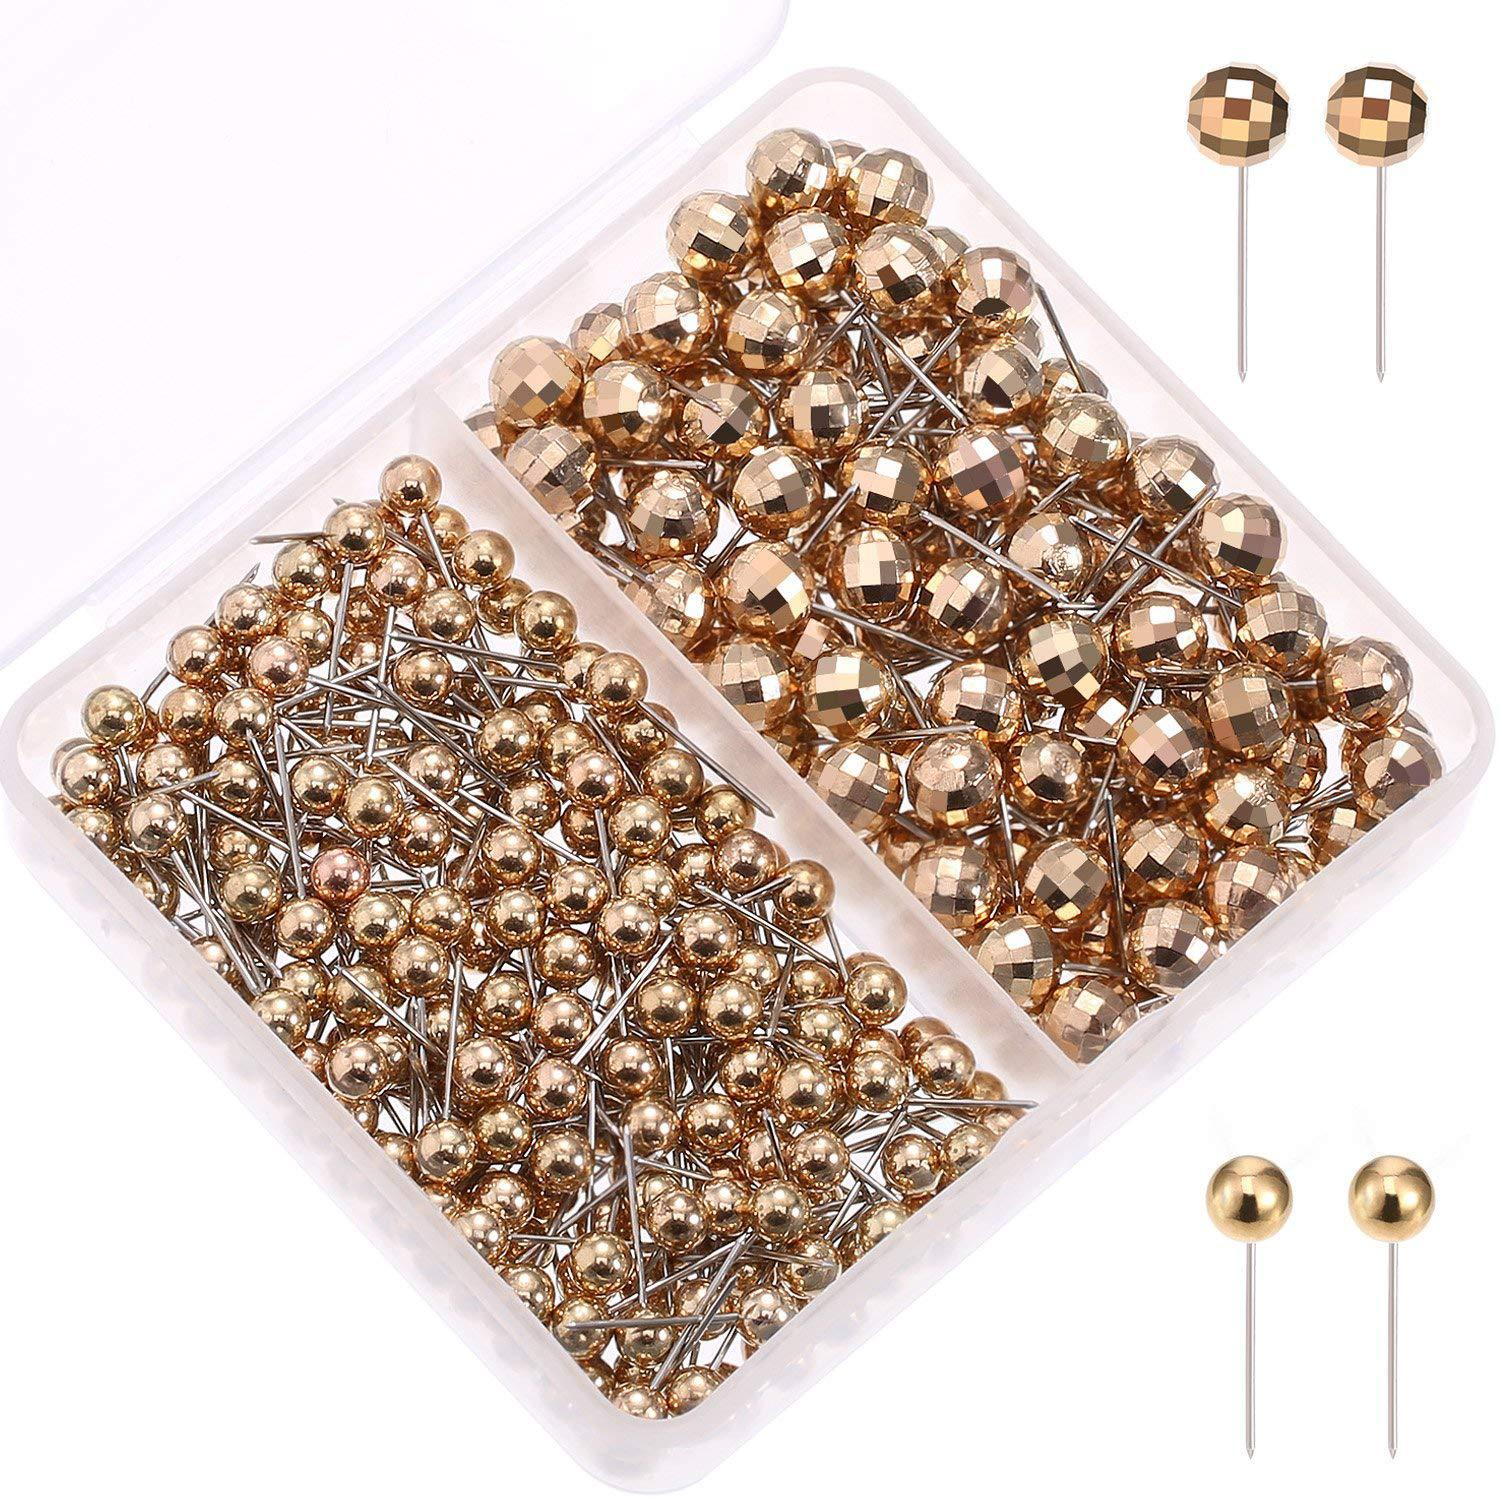 Manufacturers Direct Selling Shiny Football Surface Gold And Silver Plastic Pin Round Ball Needle Office Fixed Cross Border Ther